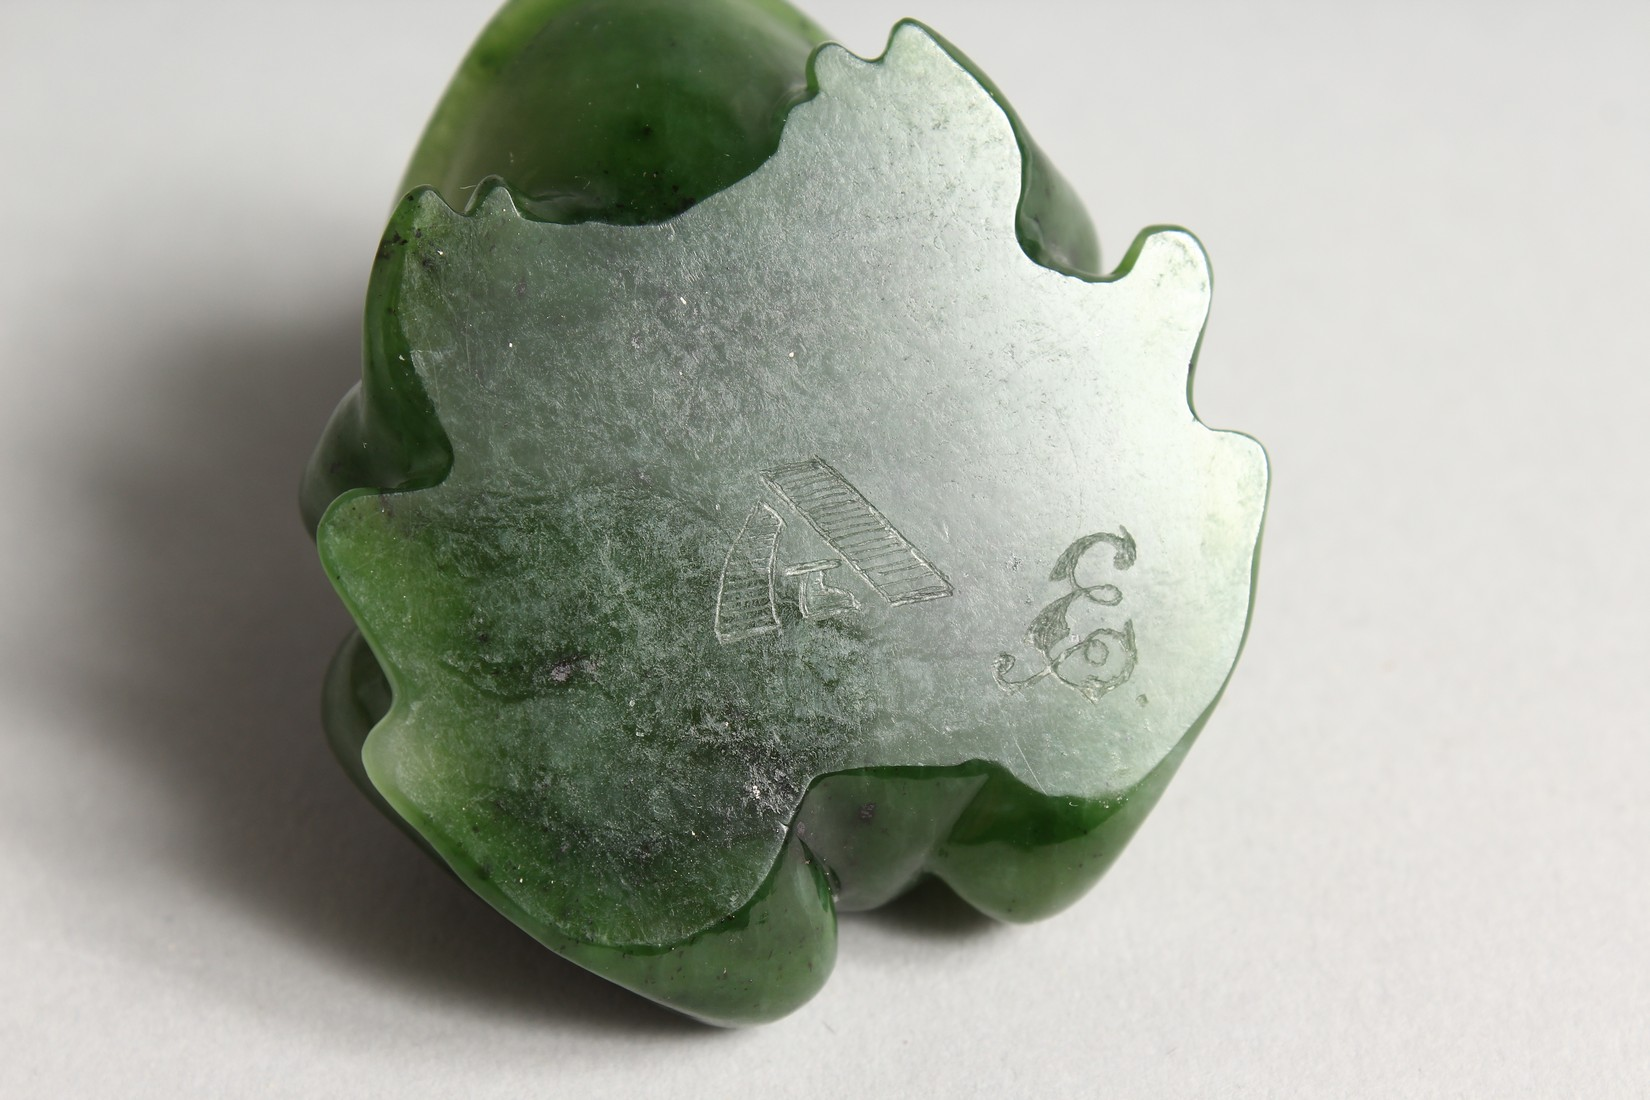 A SUPERB RUSSIAN JADE AND DIAMOND MOUNTED FROG 2ins long - Image 6 of 6